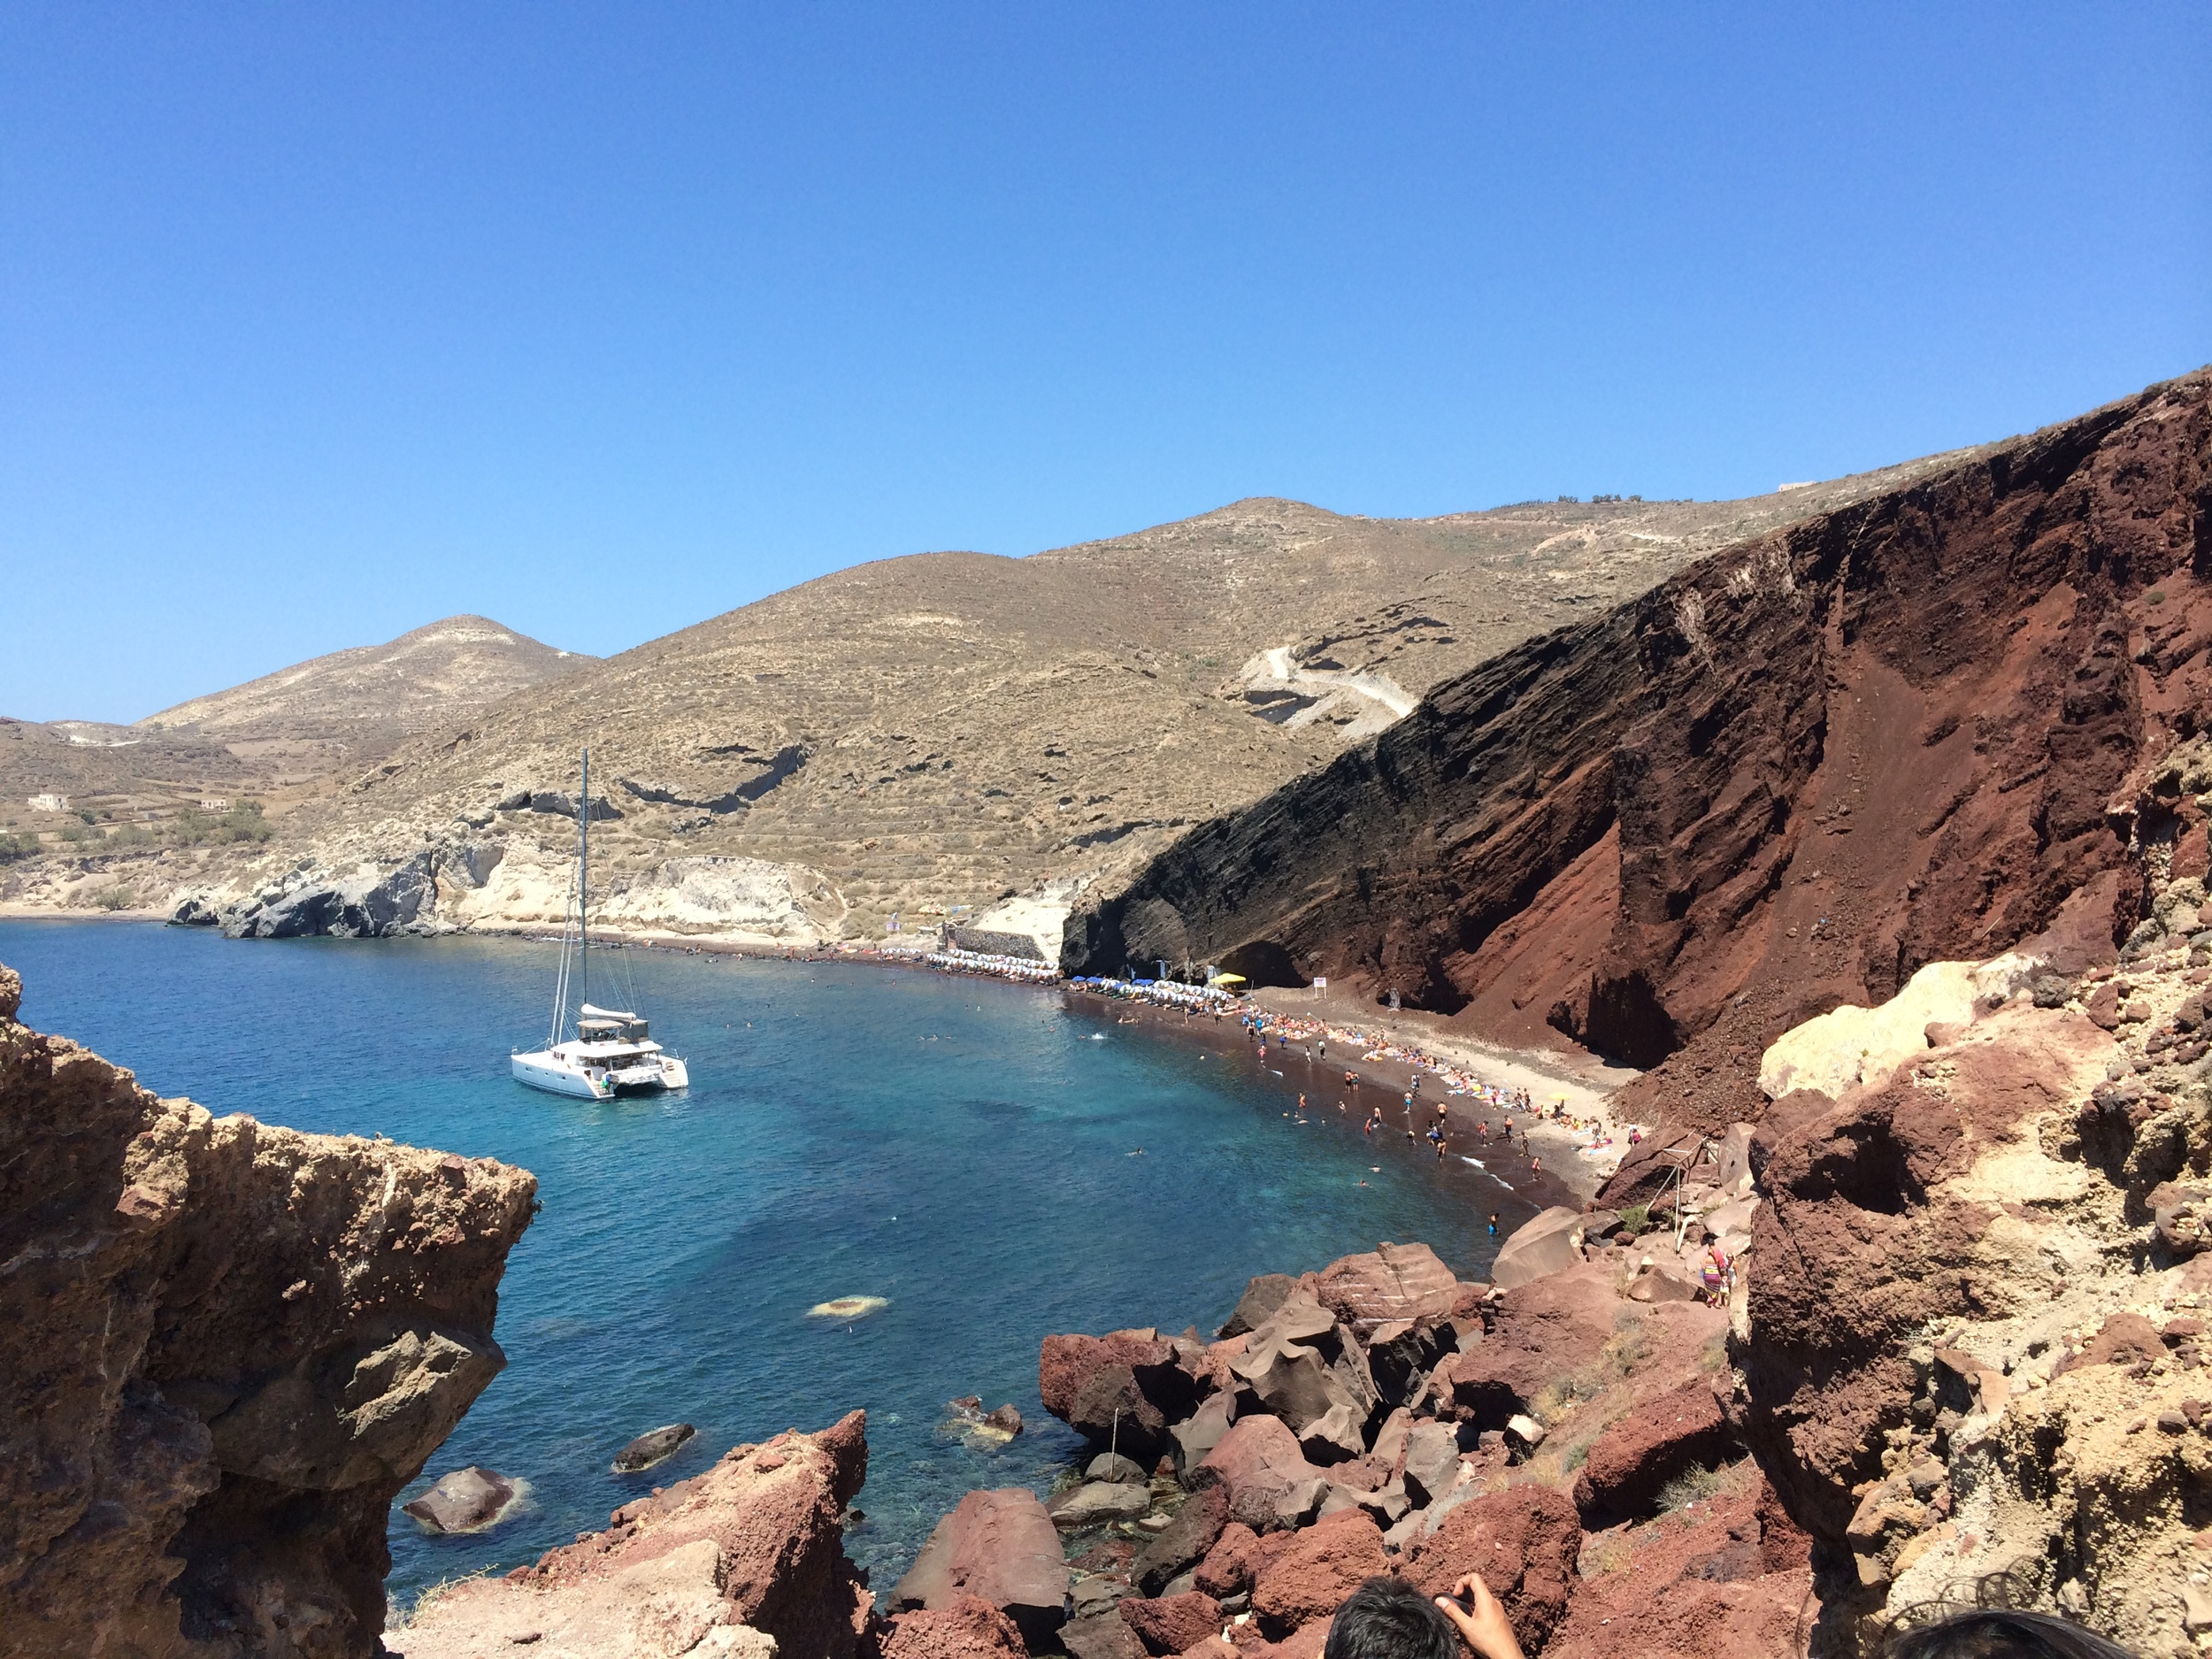 The view from the walk to Red Beach below